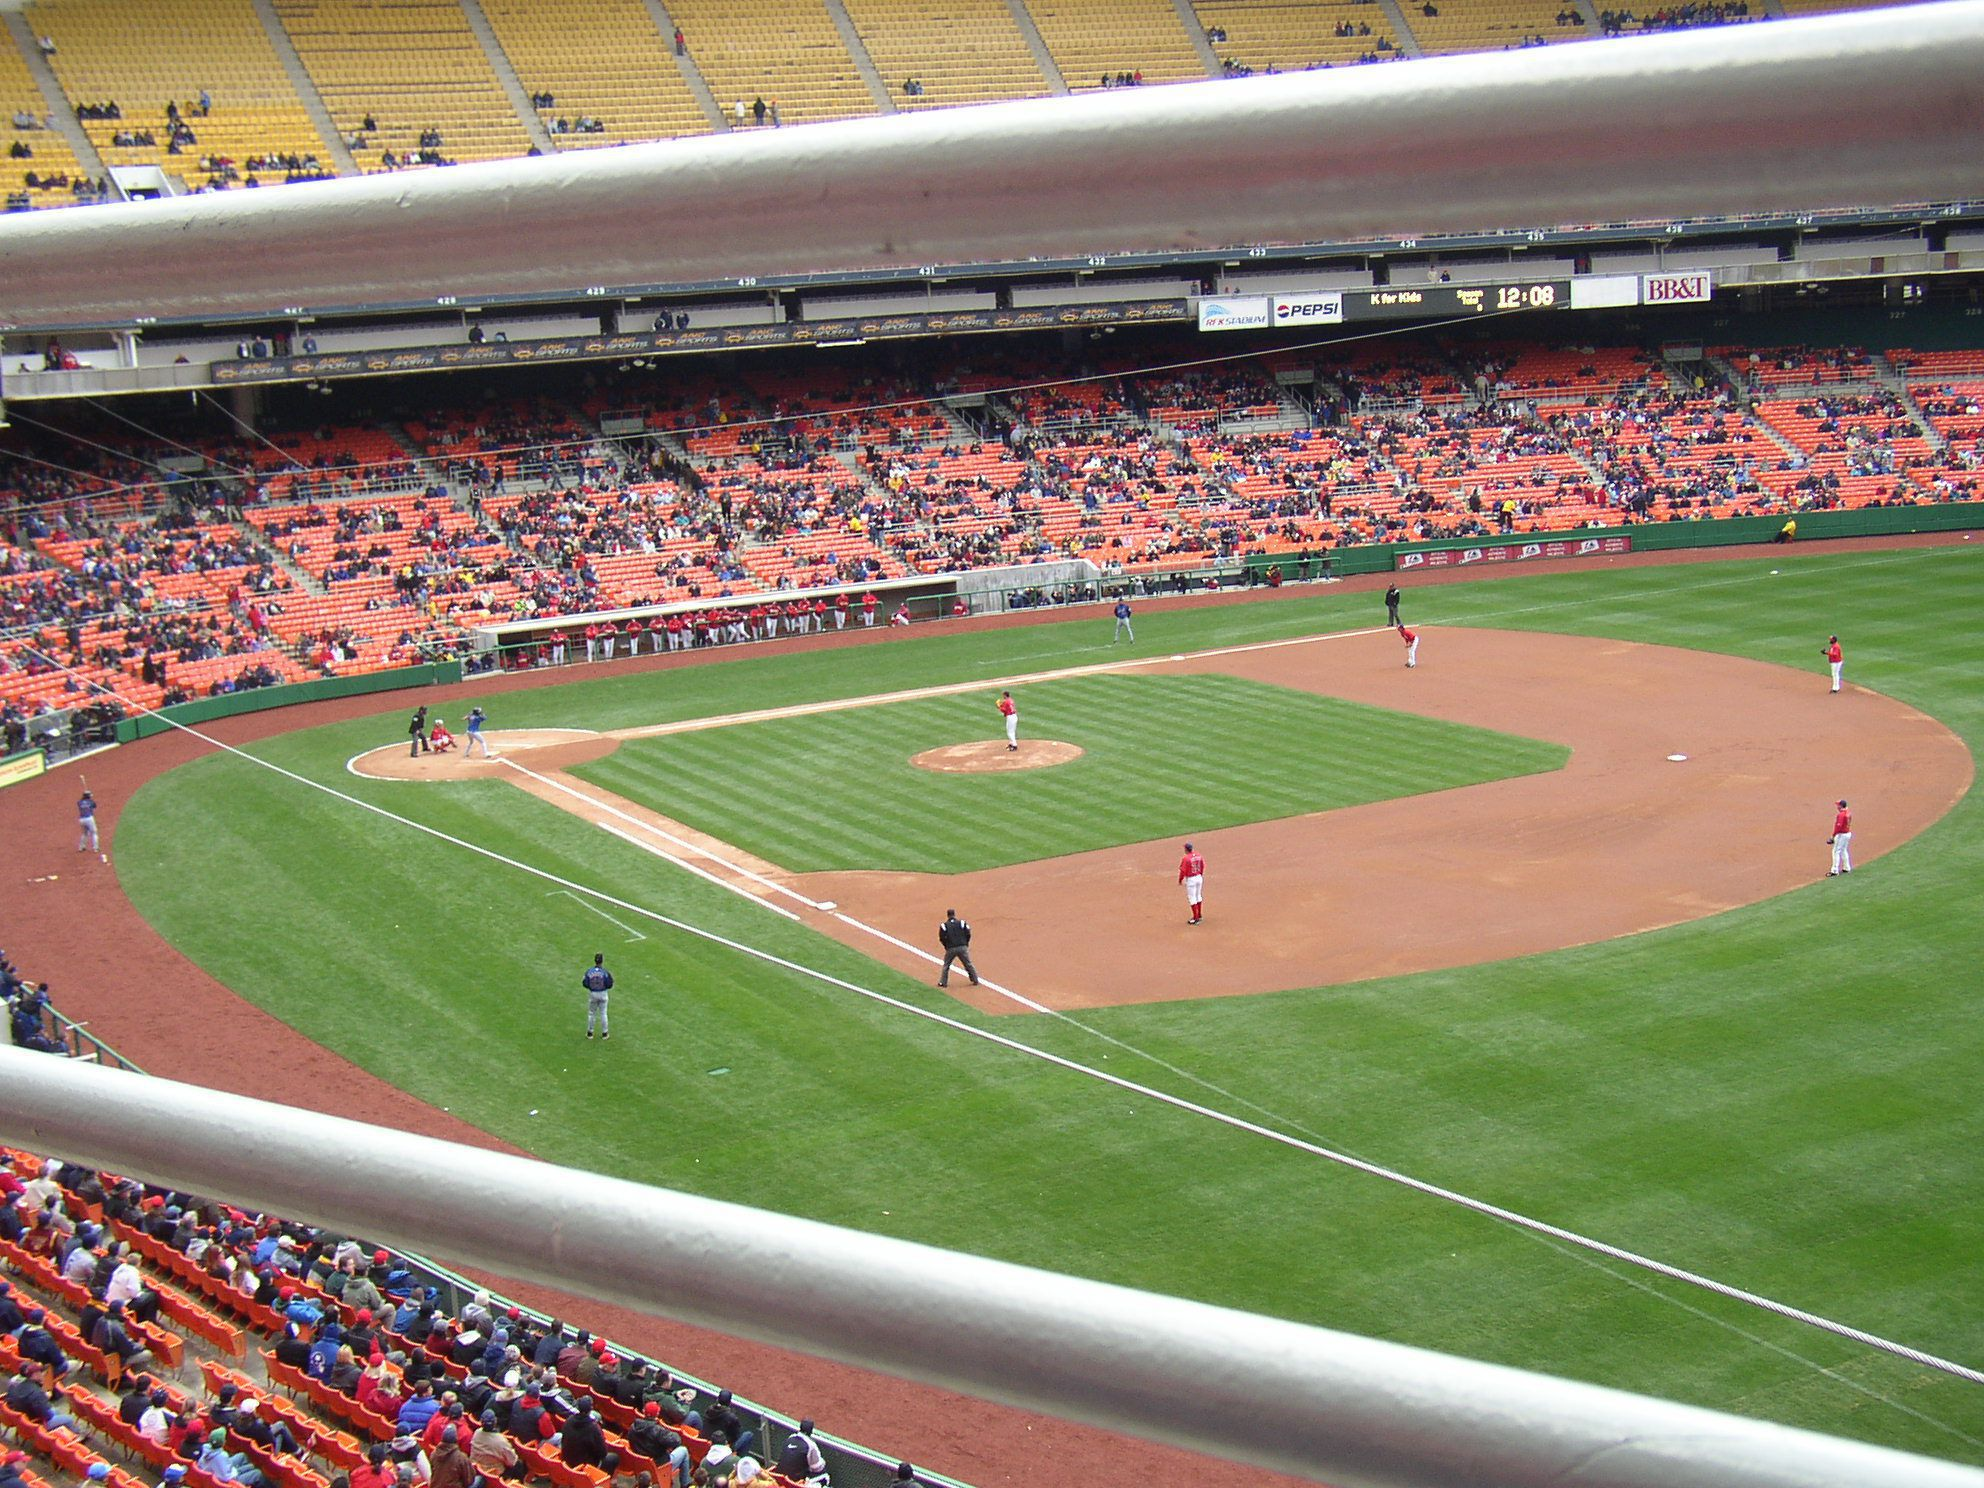 Baseball Returns to Washington, April 3, 2005